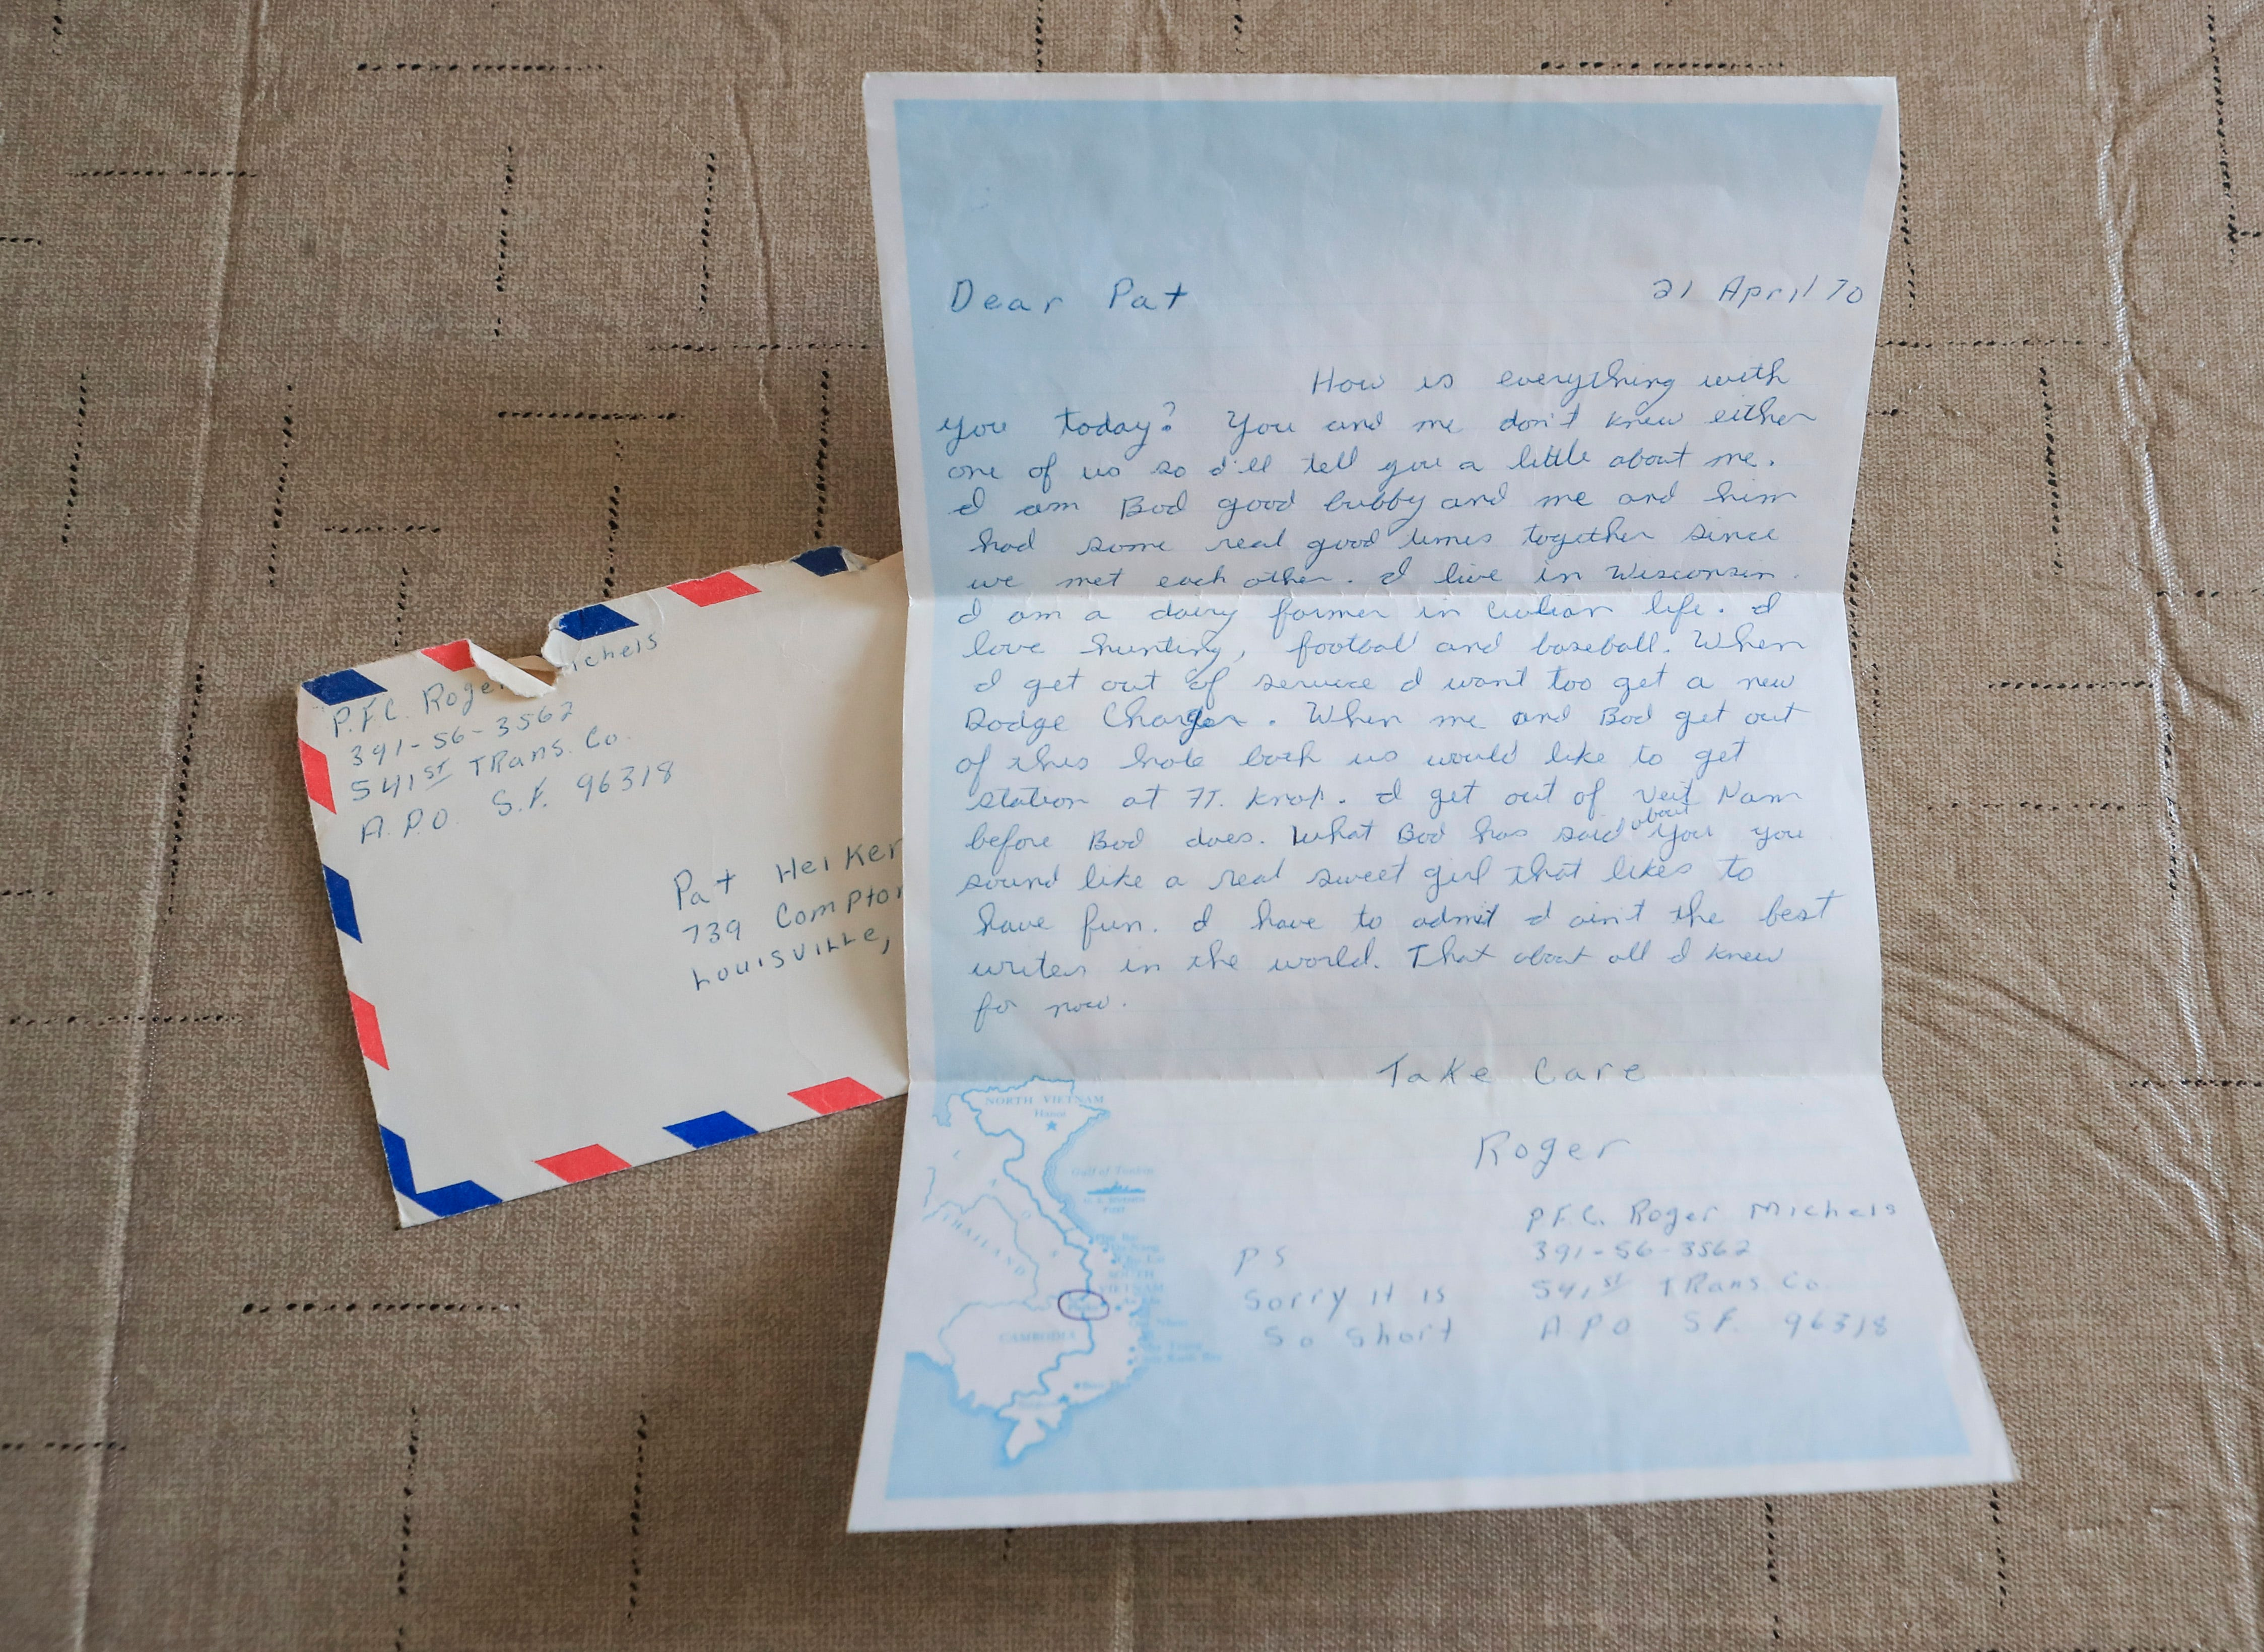 The first letter Roger Michels wrote to his future wife Pat. The couple have been married for 50 years. Feb. 3, 2021